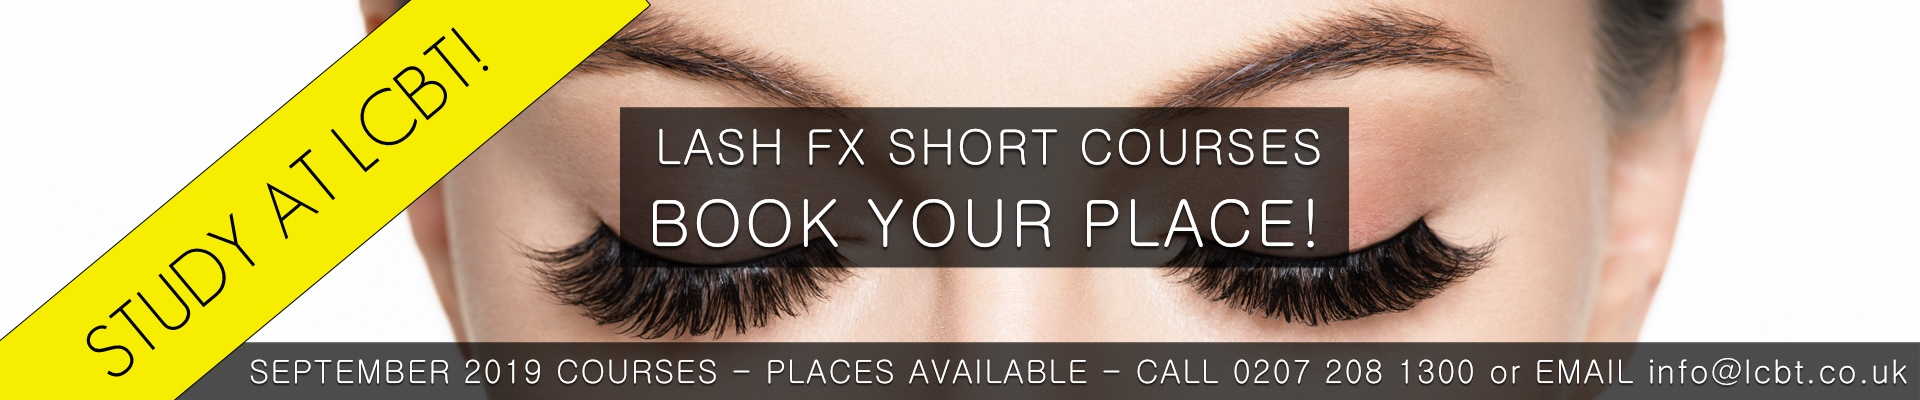 London College of Beauty Therapy LASH FX Short Courses